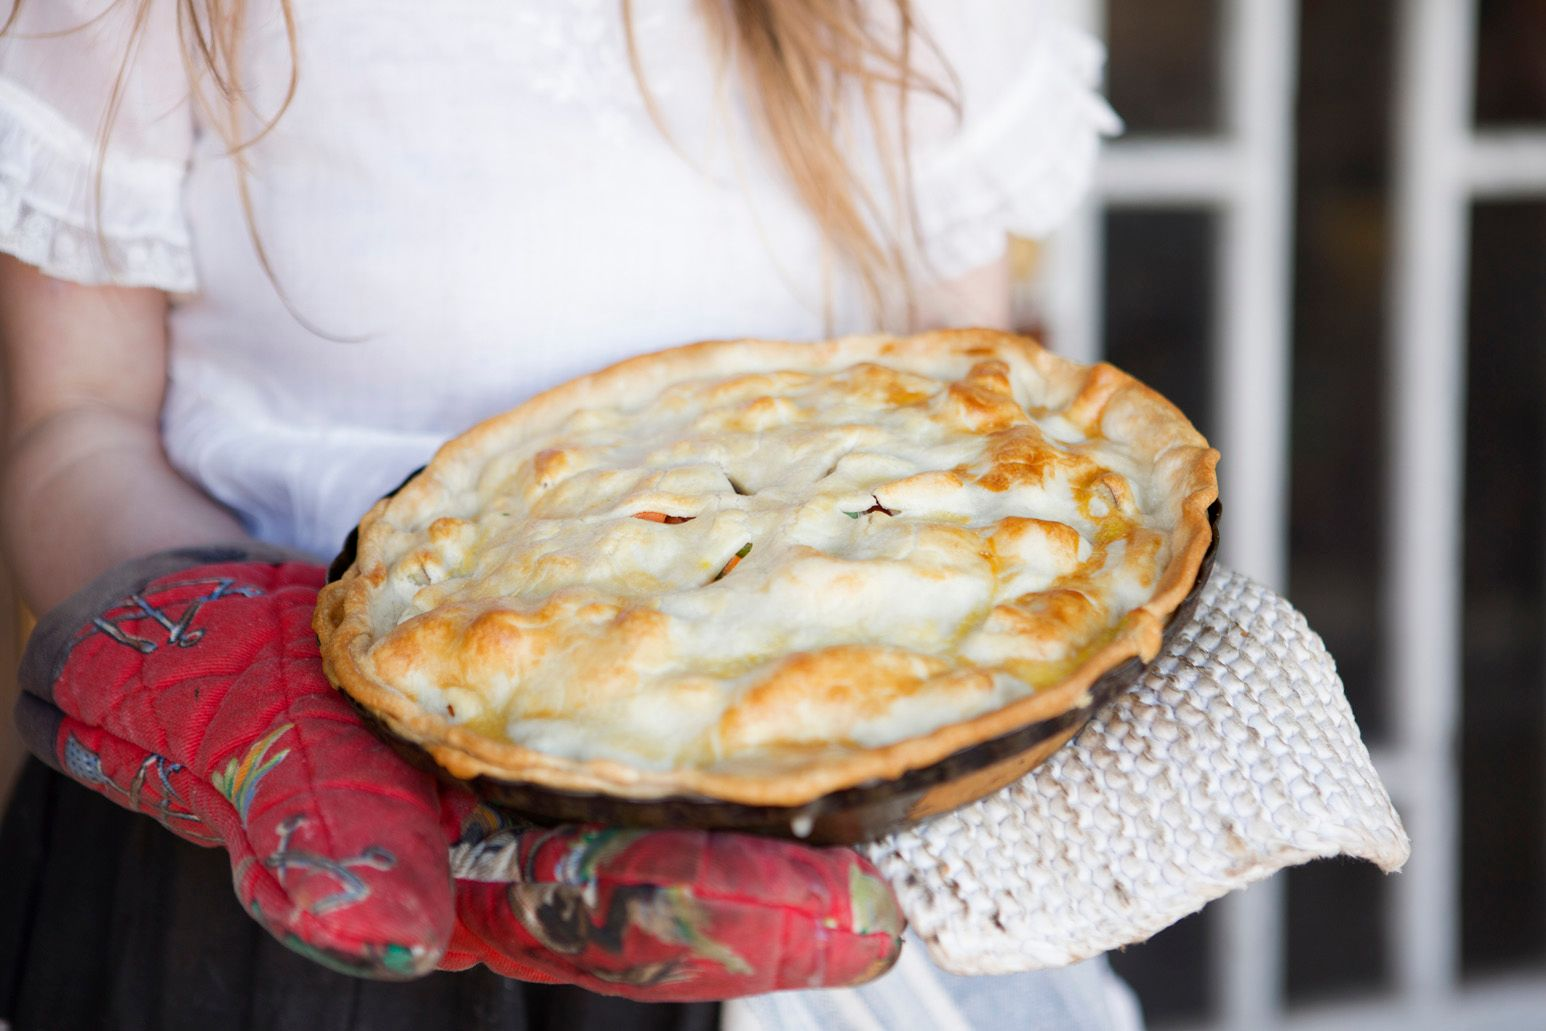 Vegetarian pot pie is one delicious dish you can serve if you are hosting vegetarians on Thanksgiving.